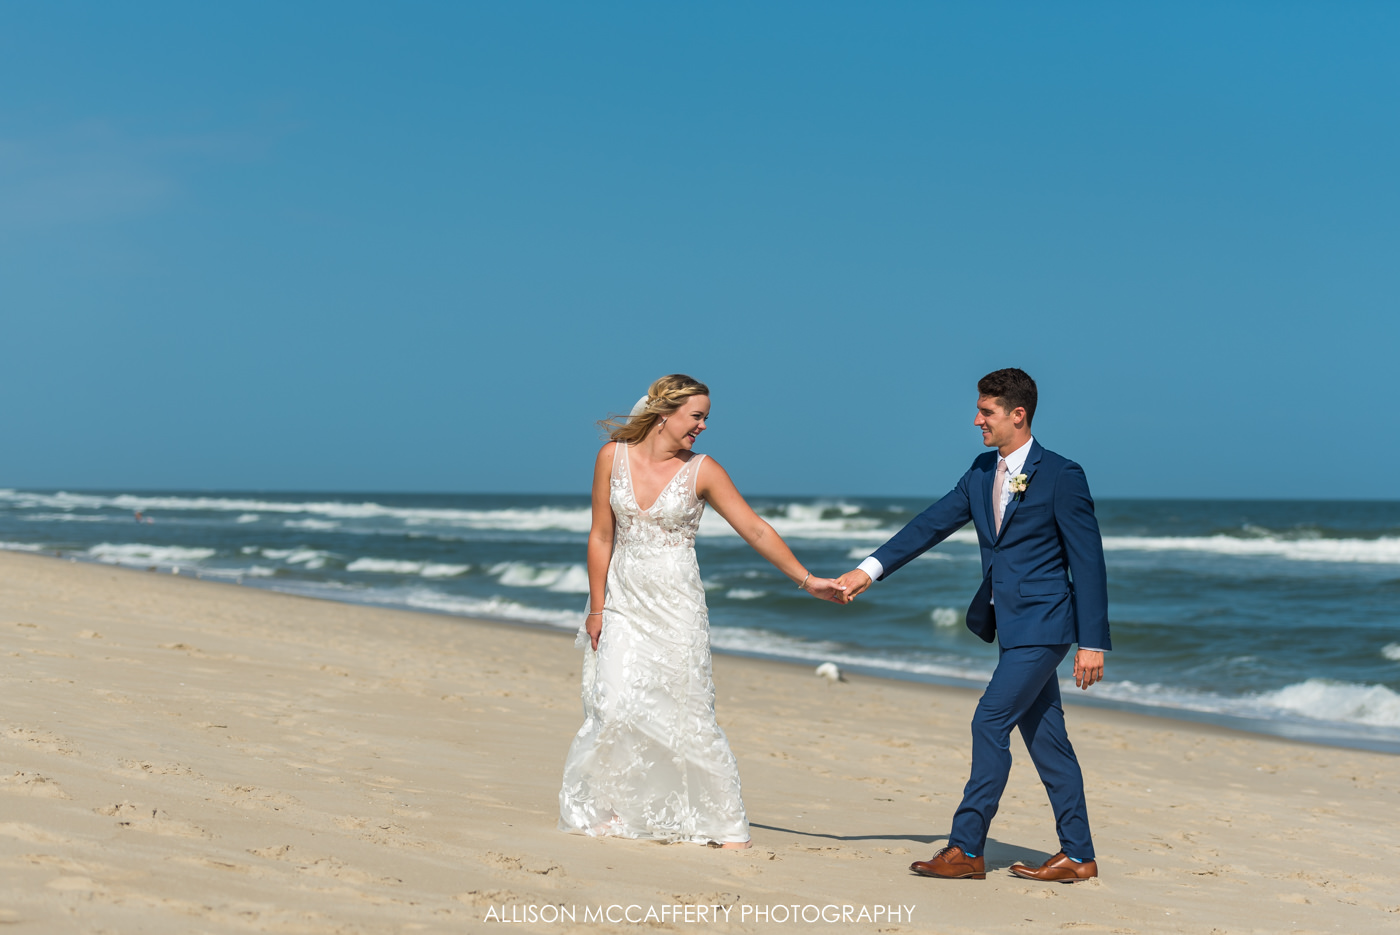 Bride leading groom up the beach in Beach Haven, NJ